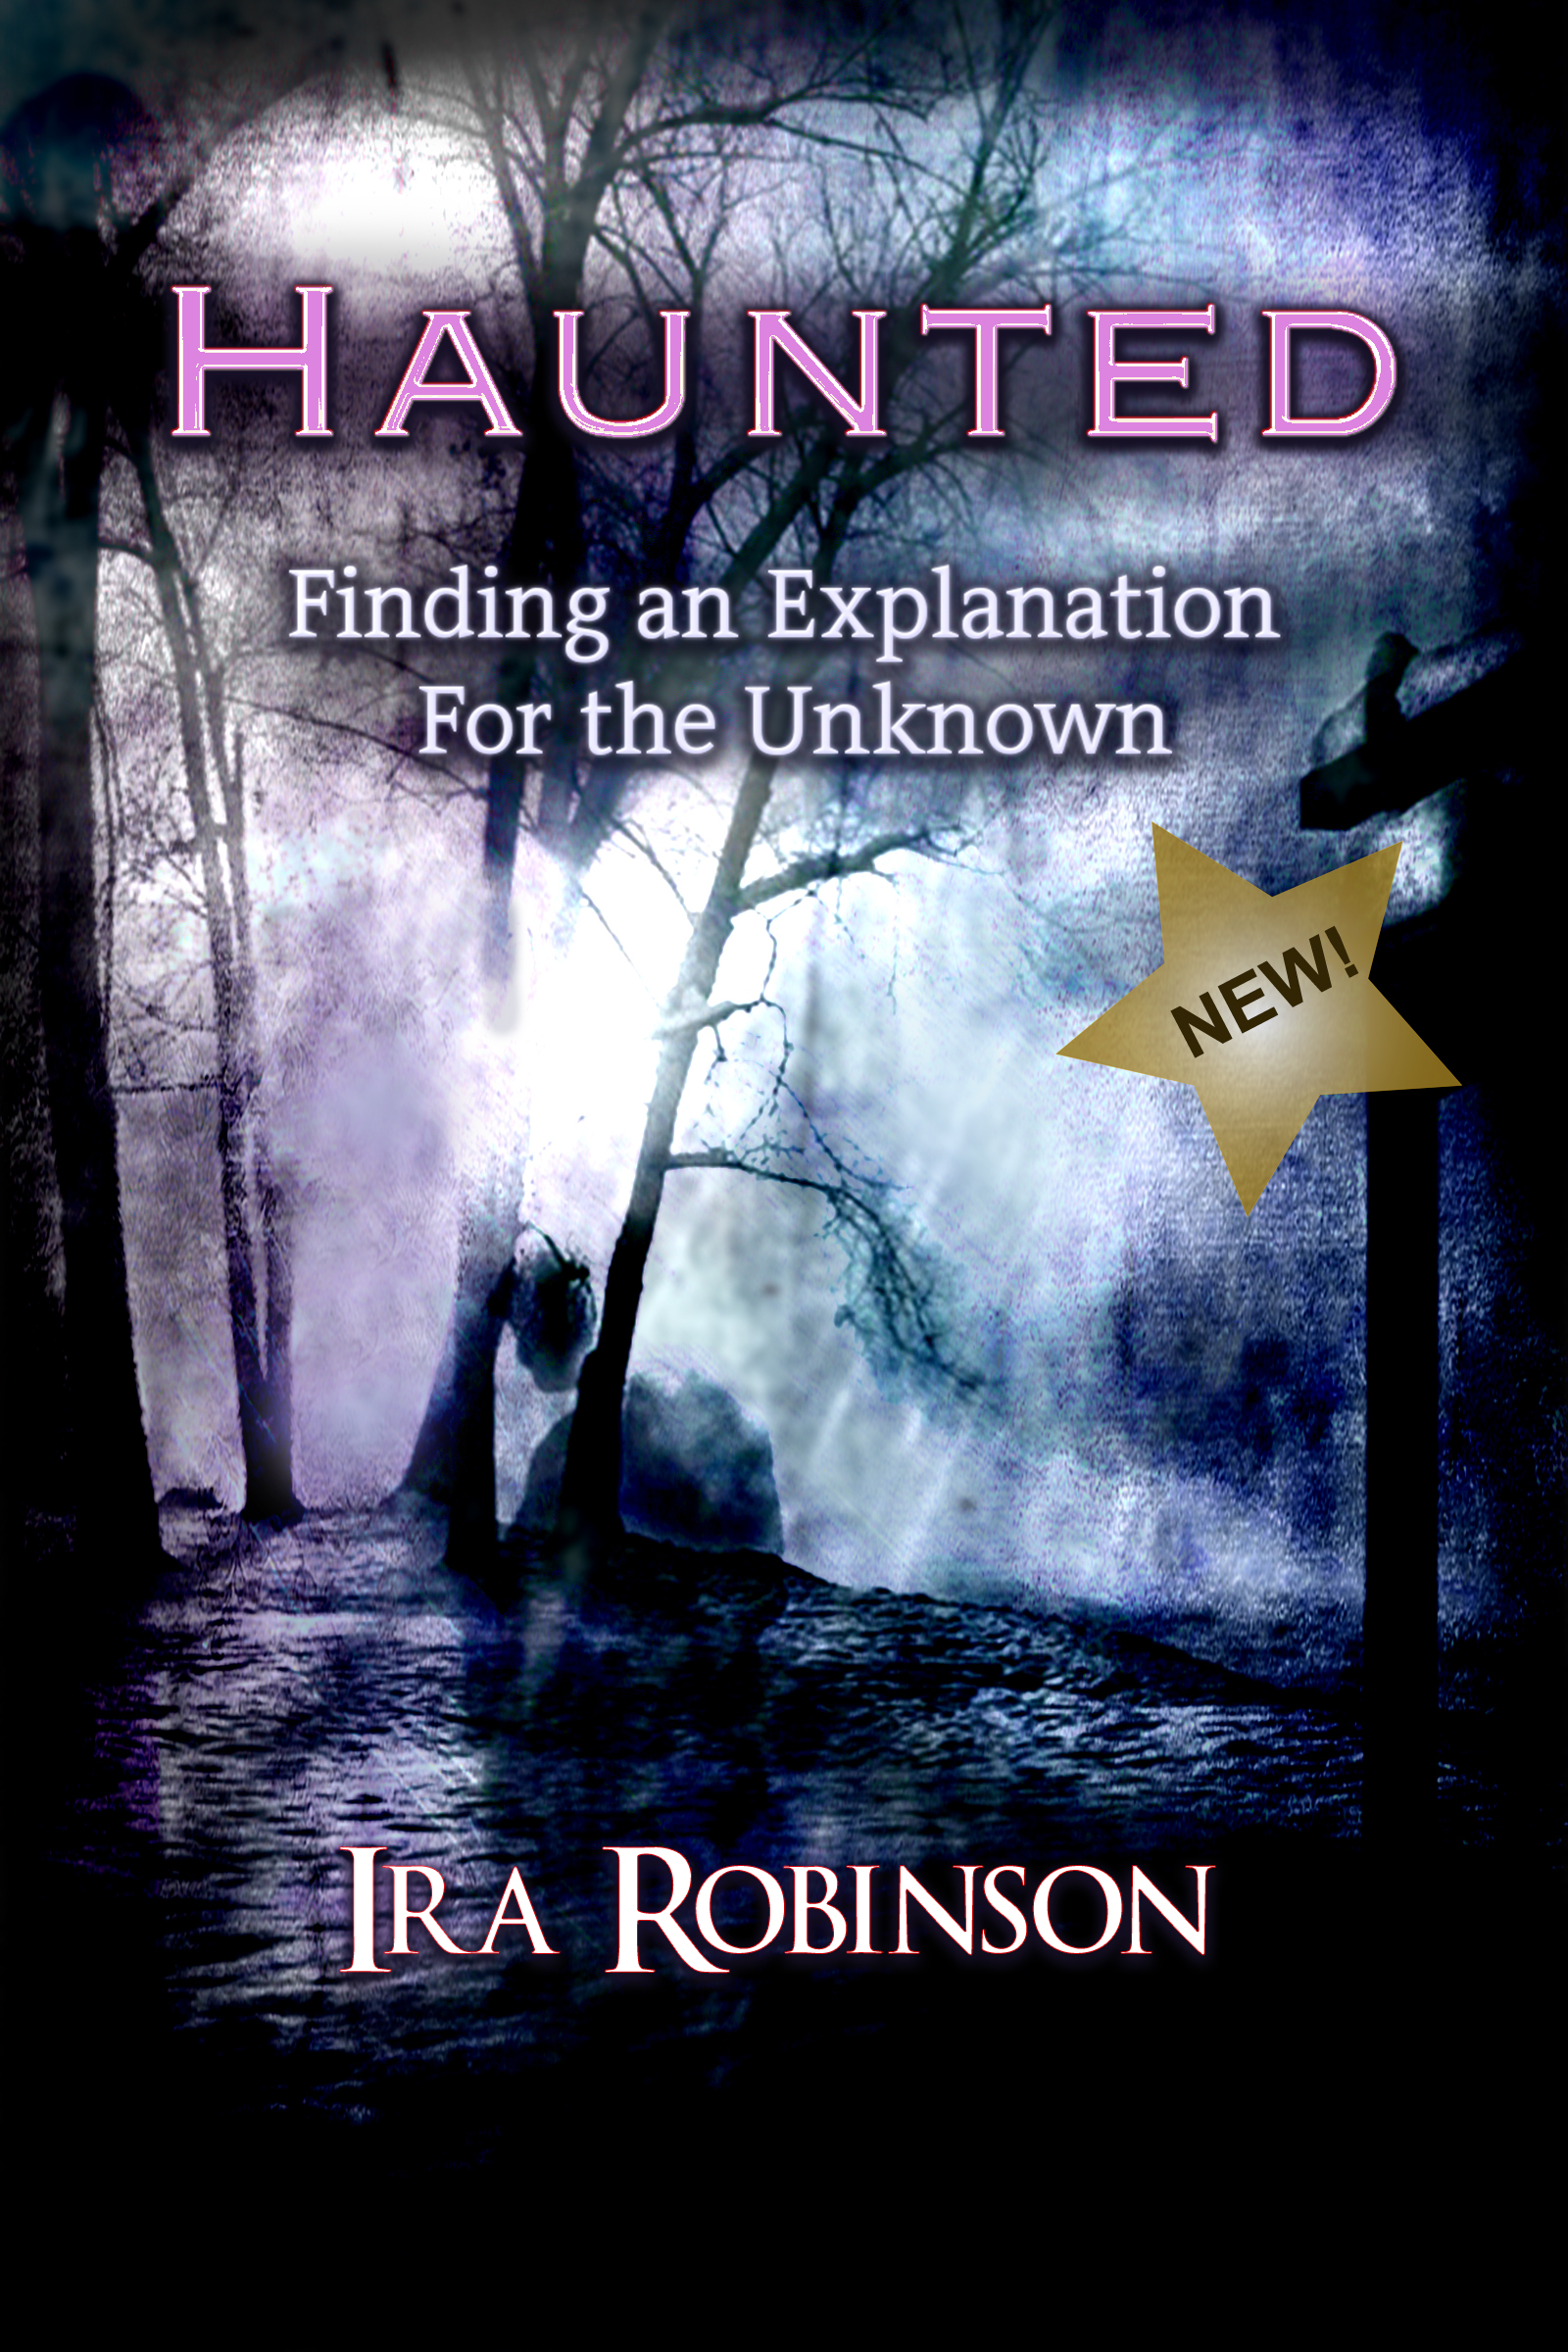 Haunted: Finding an Explanation For the Unknown